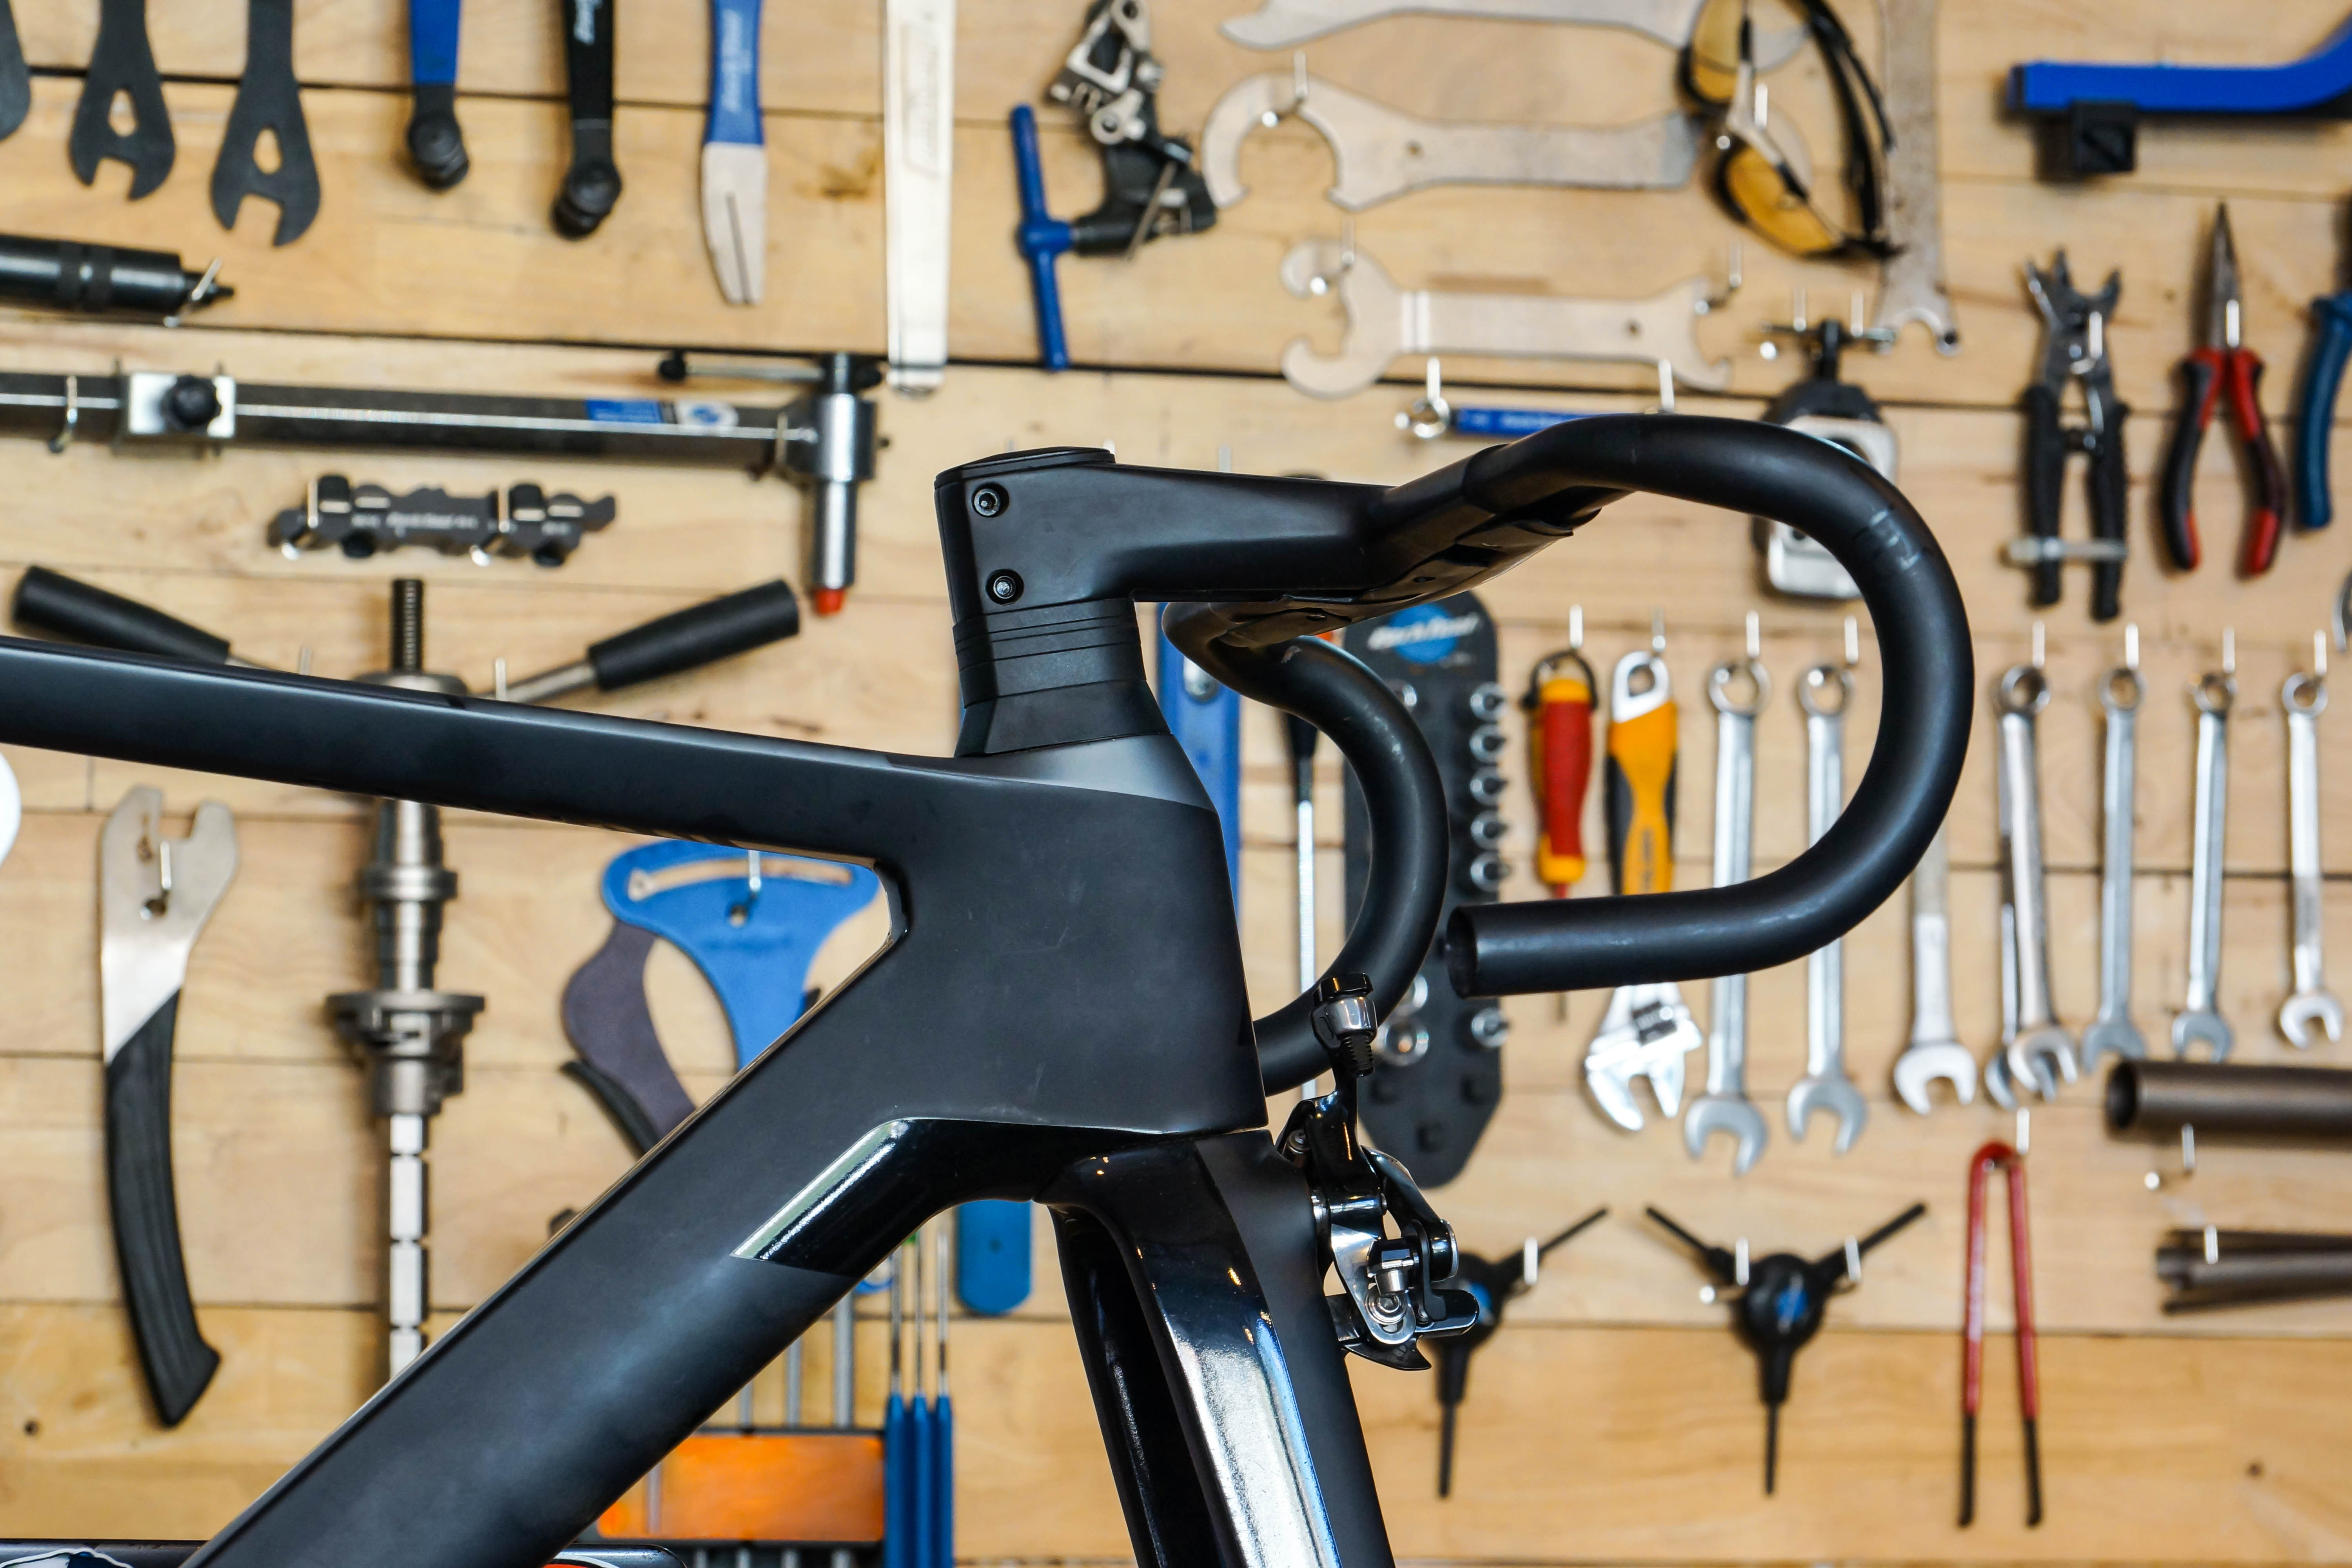 picture of a bike tools and a bike